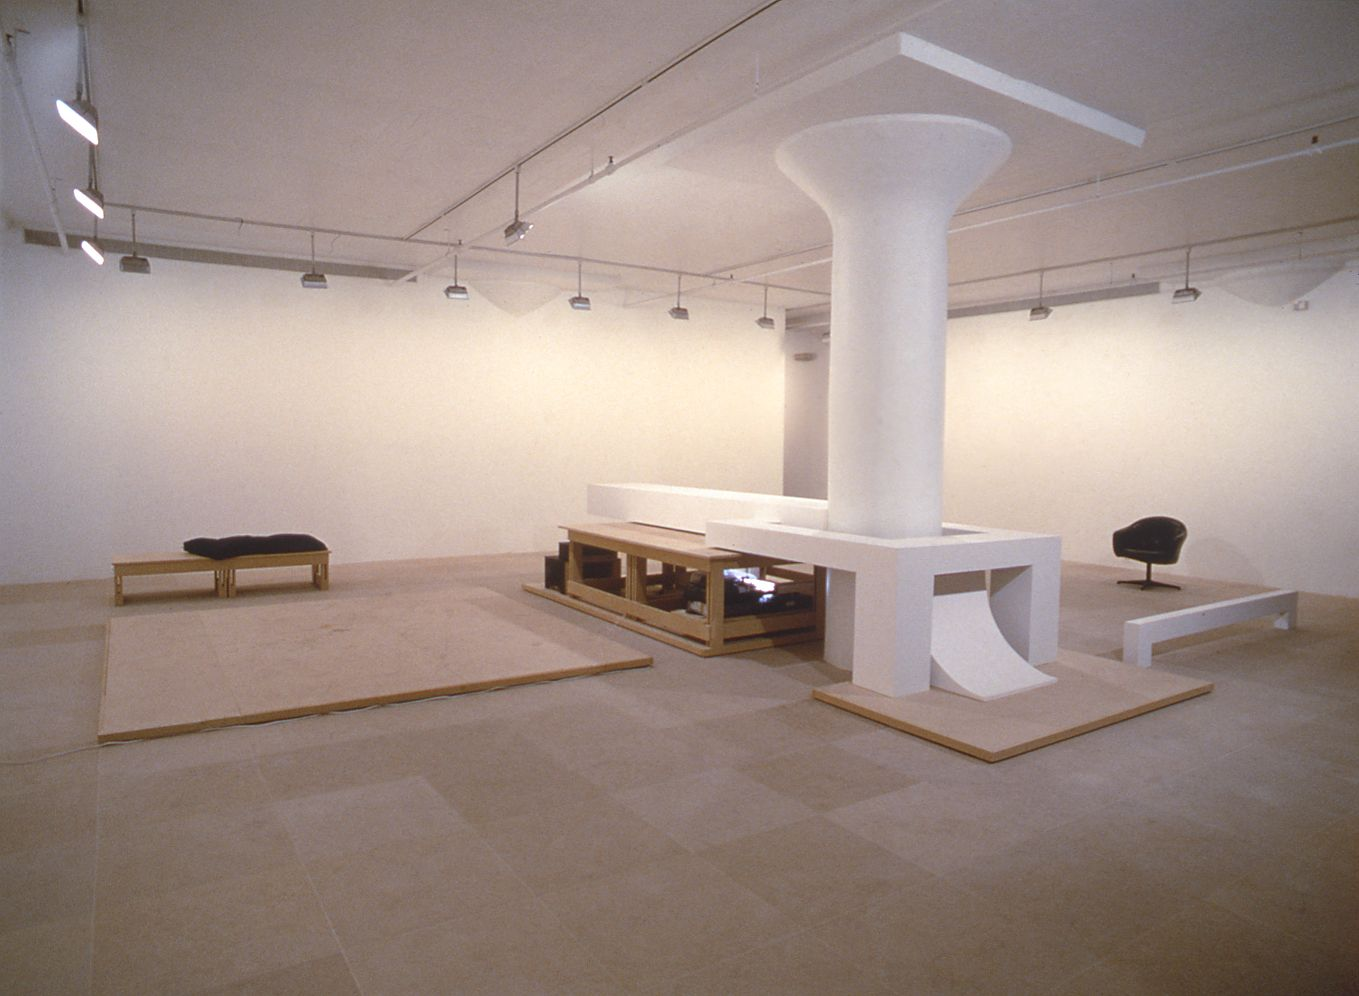 Installation view, Greene Naftali, New York, 1996